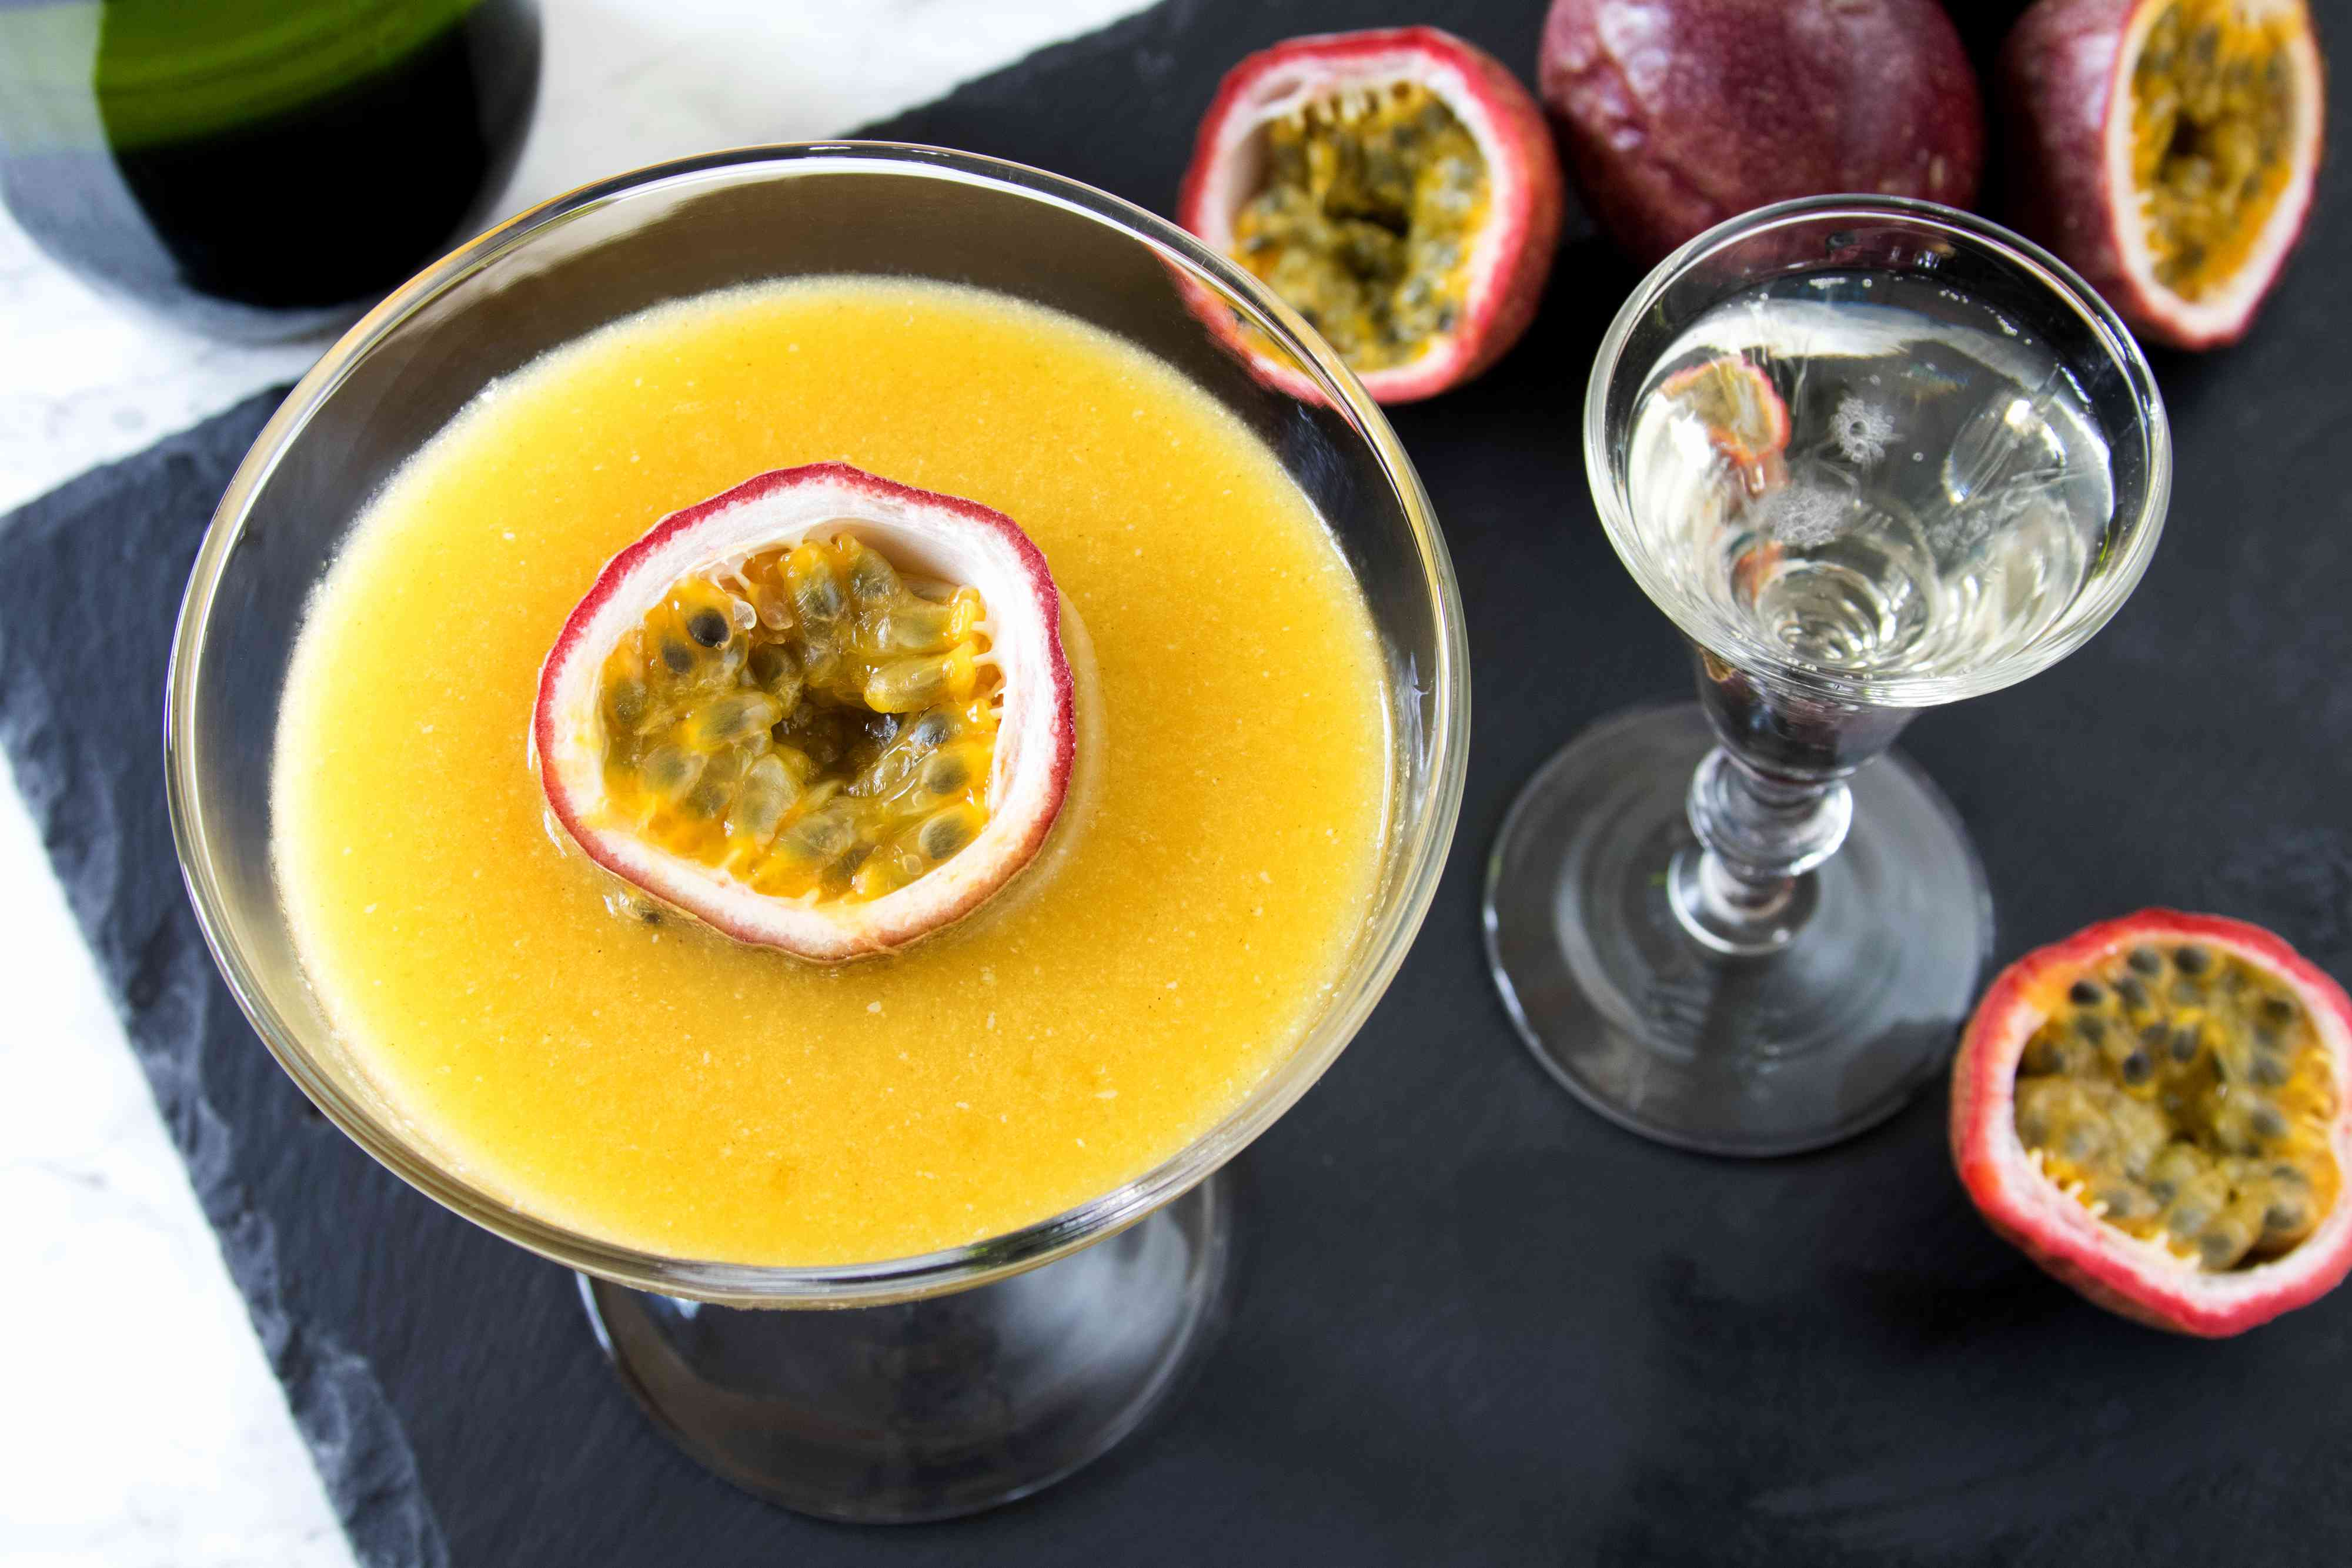 Pornstar martini cocktail with passion fruit and Champagne shot